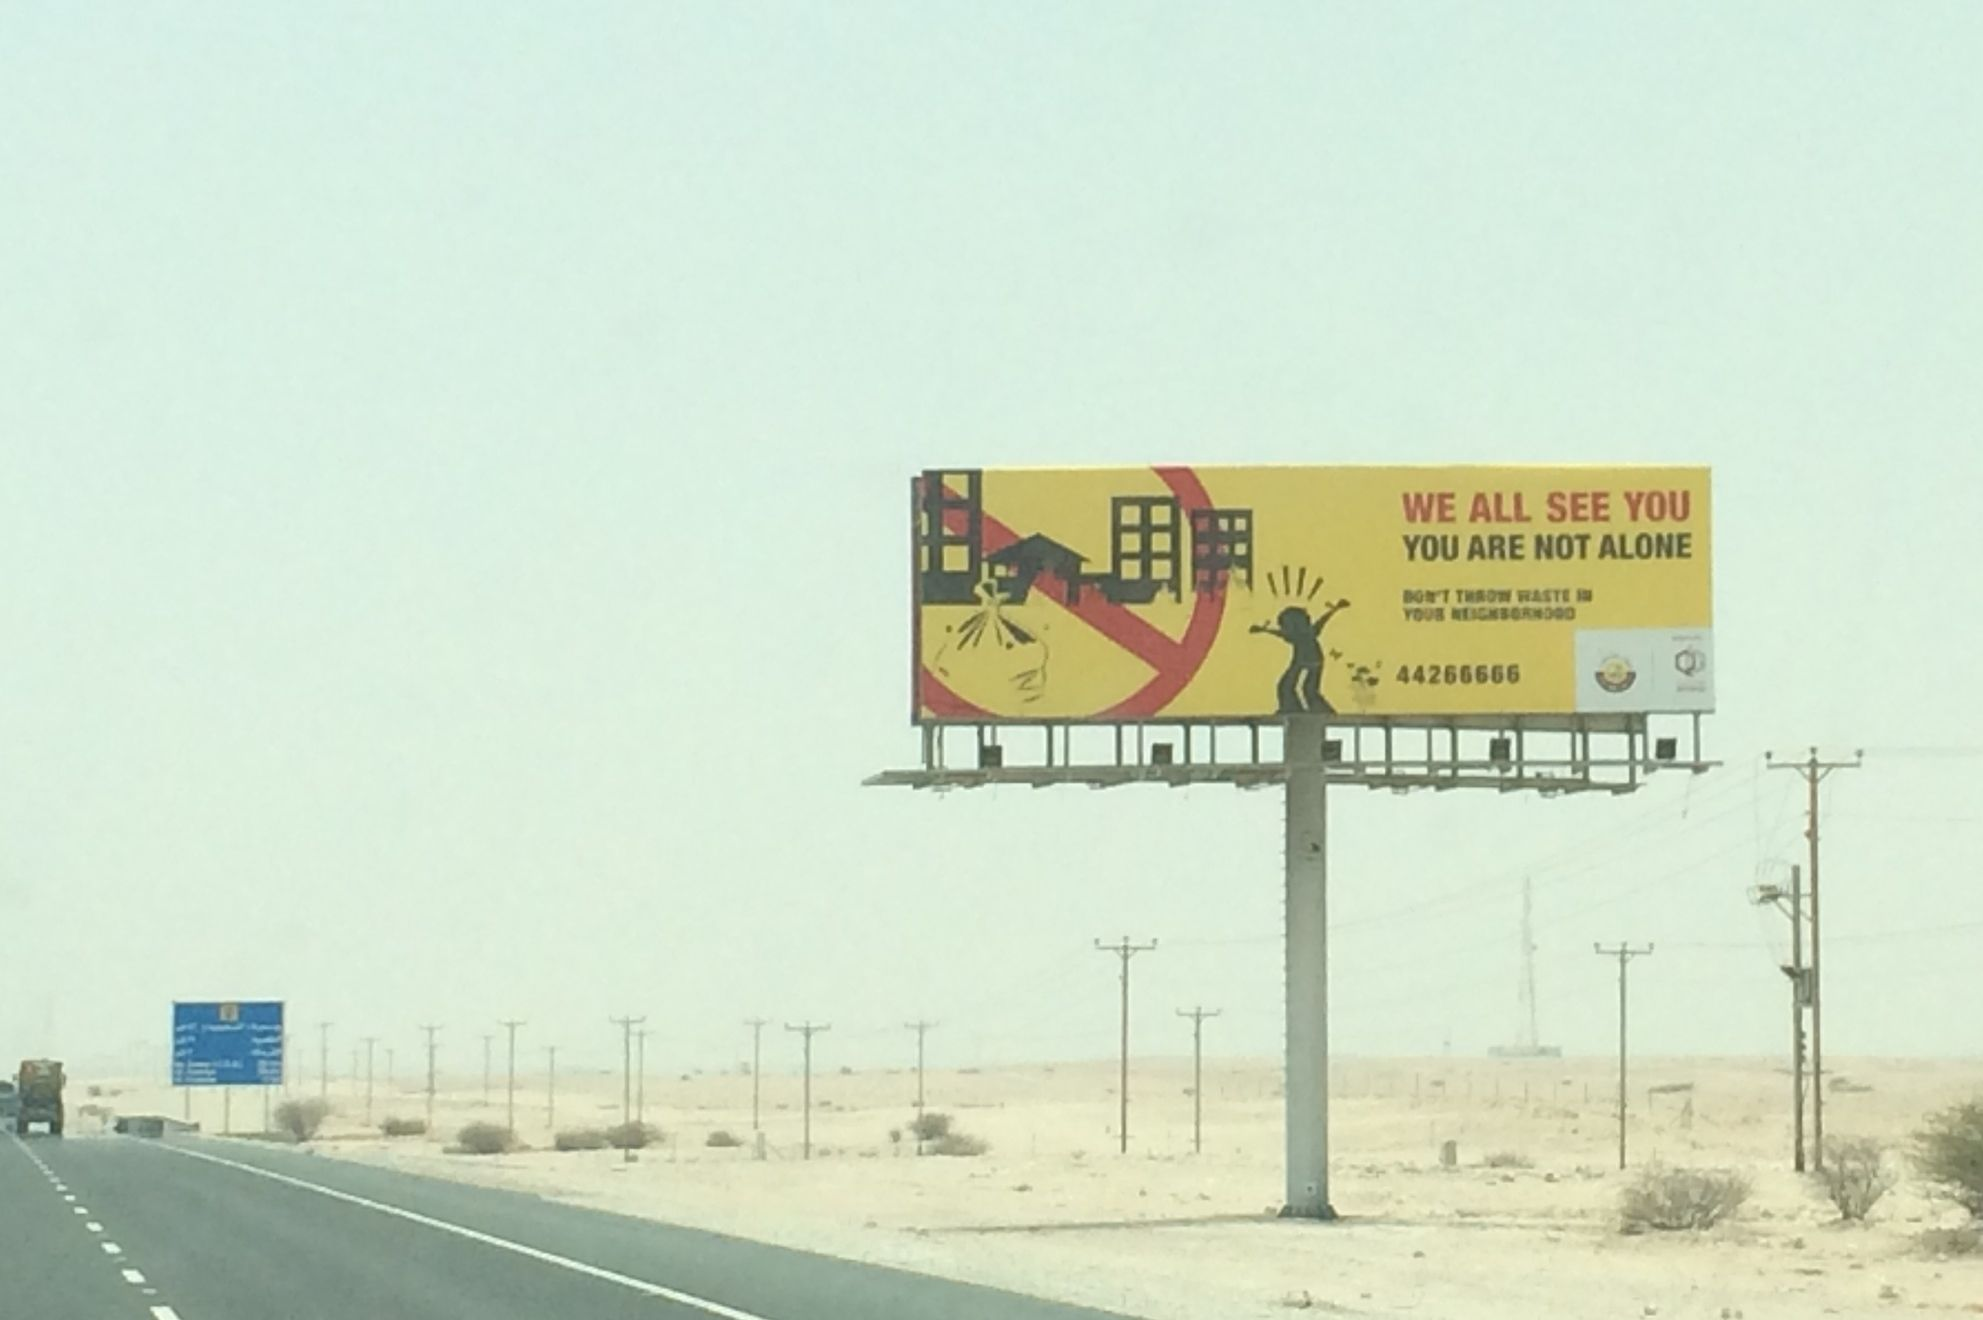 Qatar's ominous billboard campaign against littering.